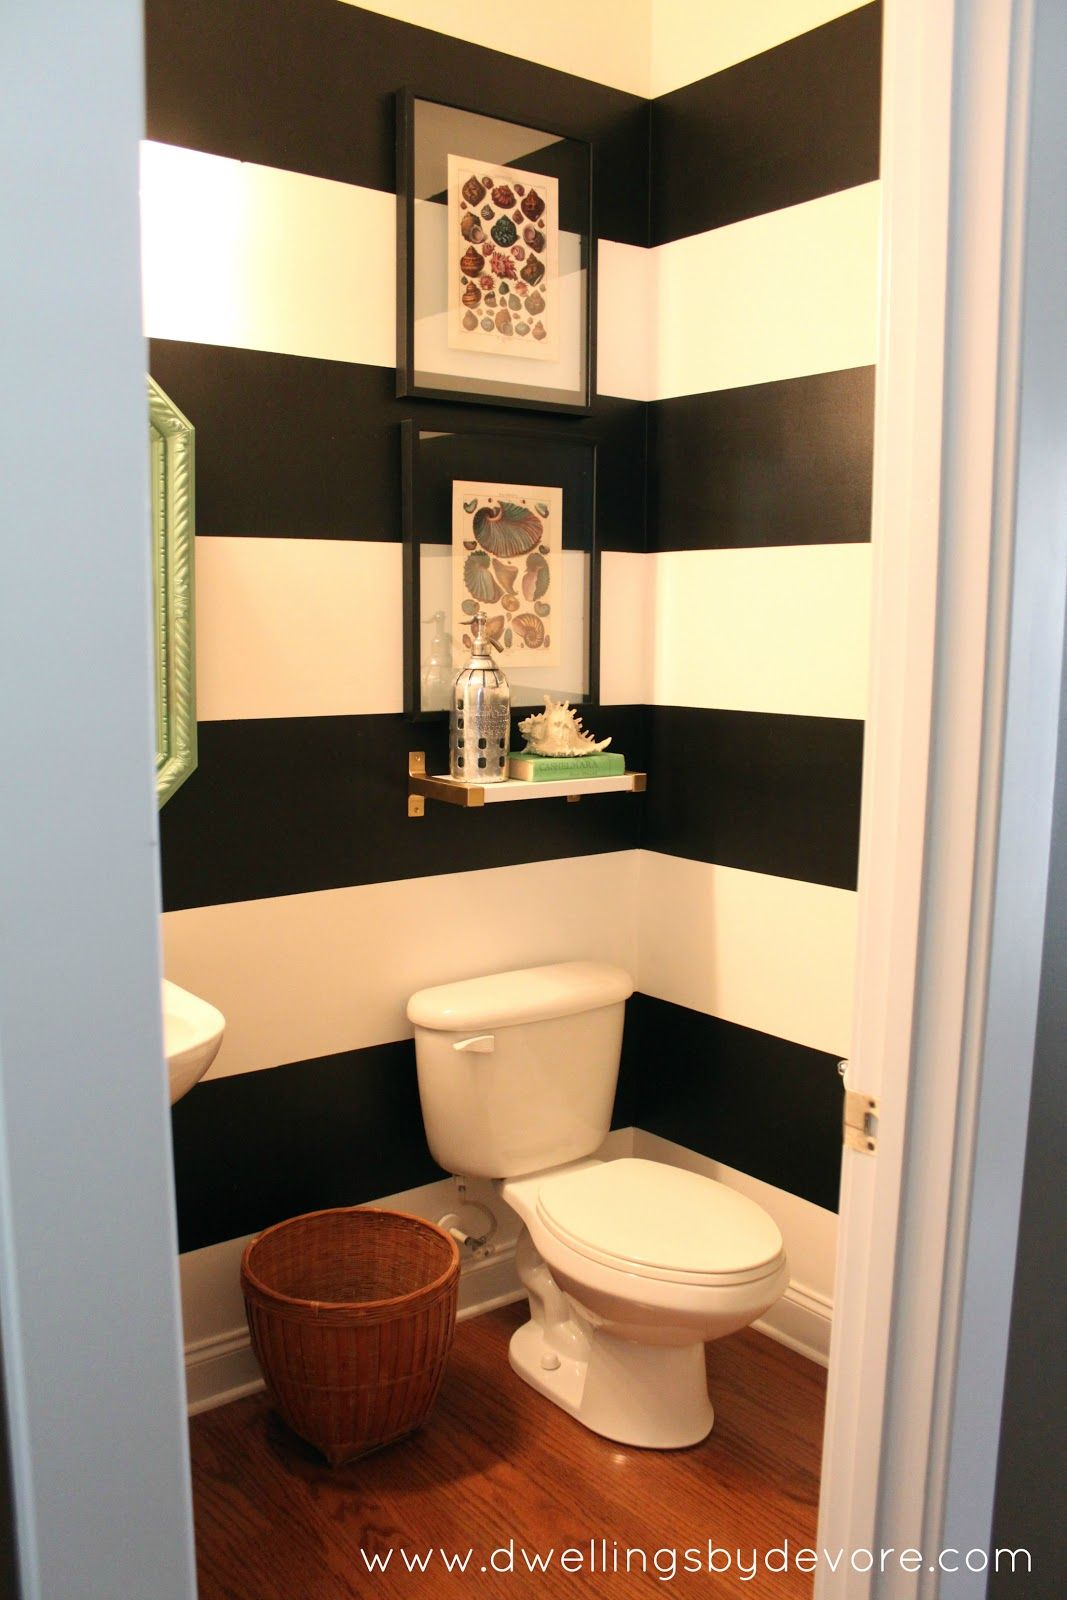 Dwellings By DeVore: Black and White Striped Bathroom | House I Wish ...